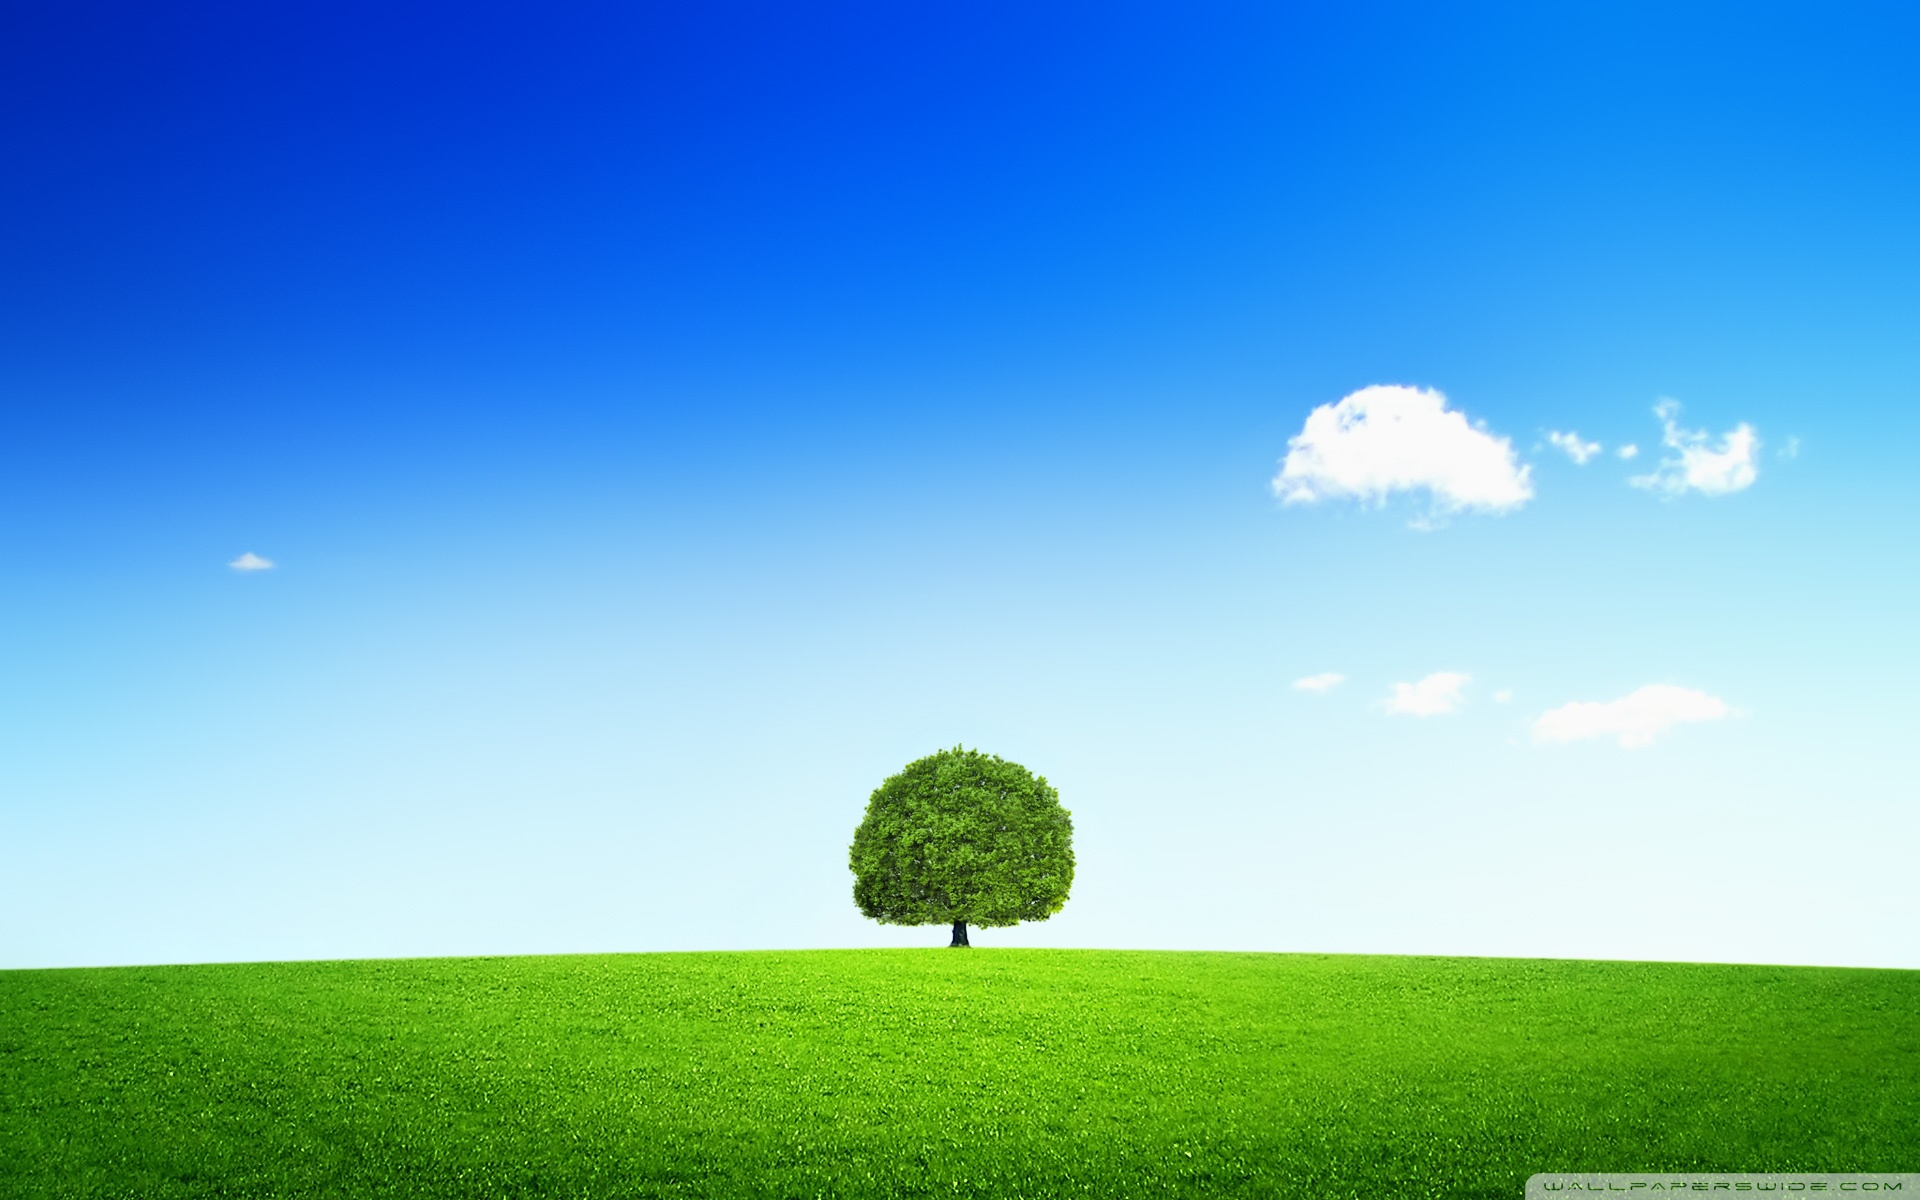 Single Tree Wallpaper